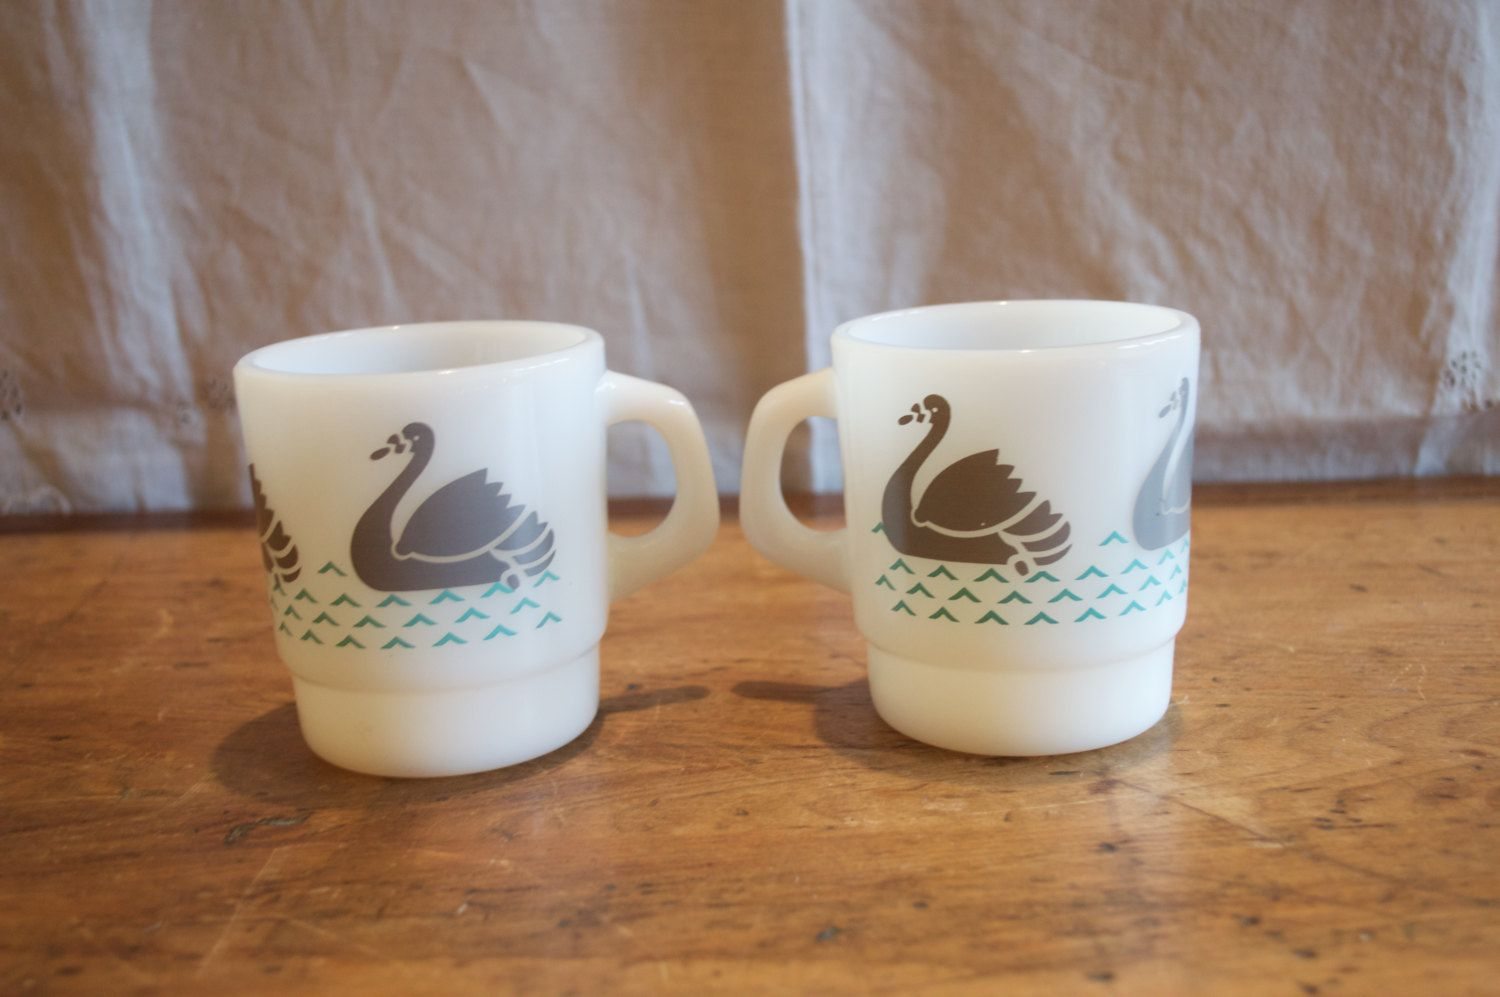 Sale!!  Two UNIQUE TERMOCRISA Coffee Mugs. Lovely SWAN Design in Gray and Turquoise Colour. by GottaBuyVintage on Etsy https://www.etsy.com/listing/213089110/sale-two-unique-termocrisa-coffee-mugs